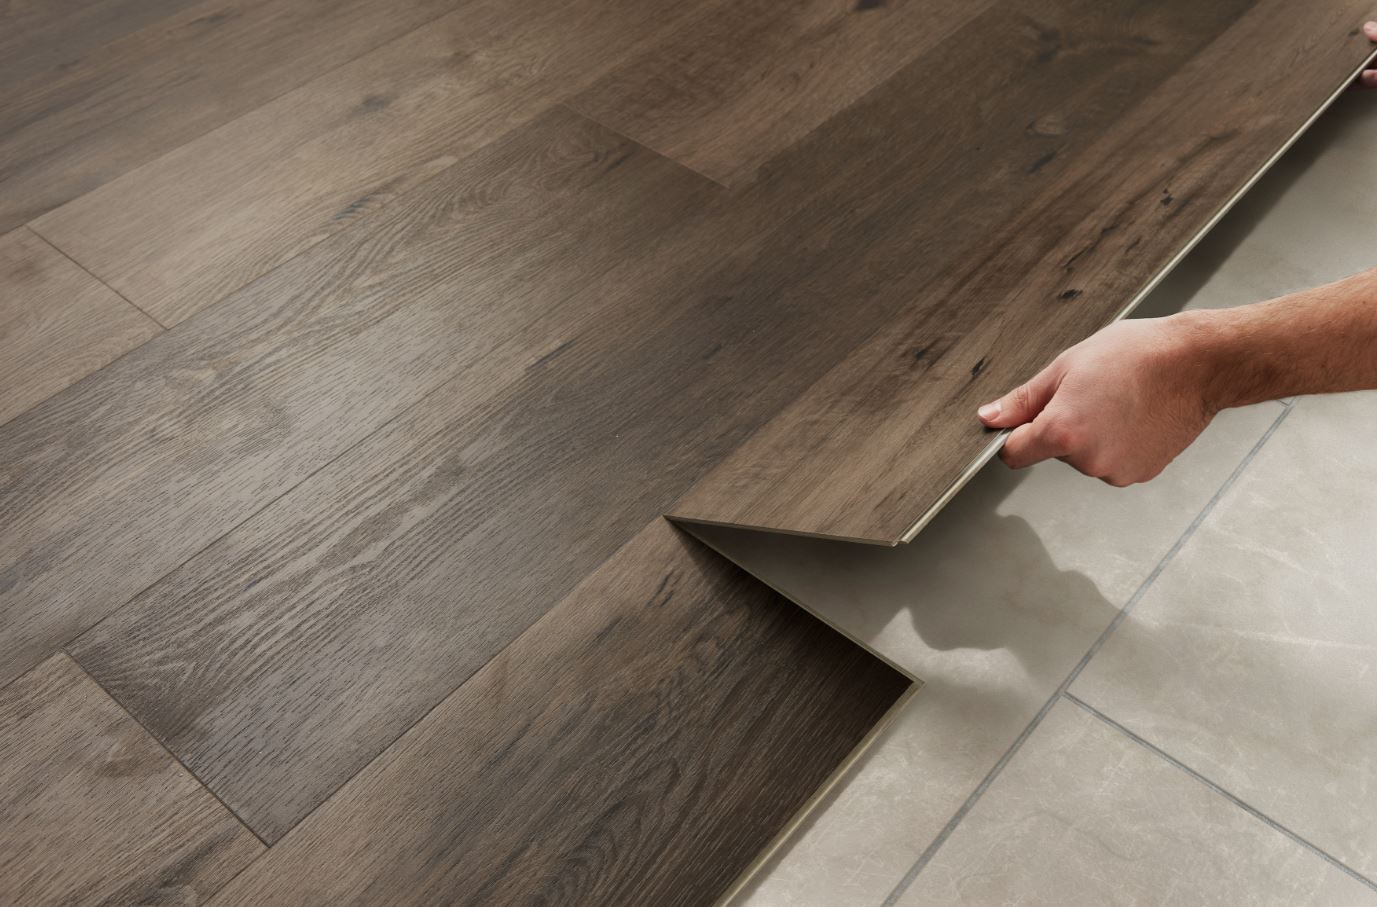 LVT vs. Hardwood Flooring. What's the difference?